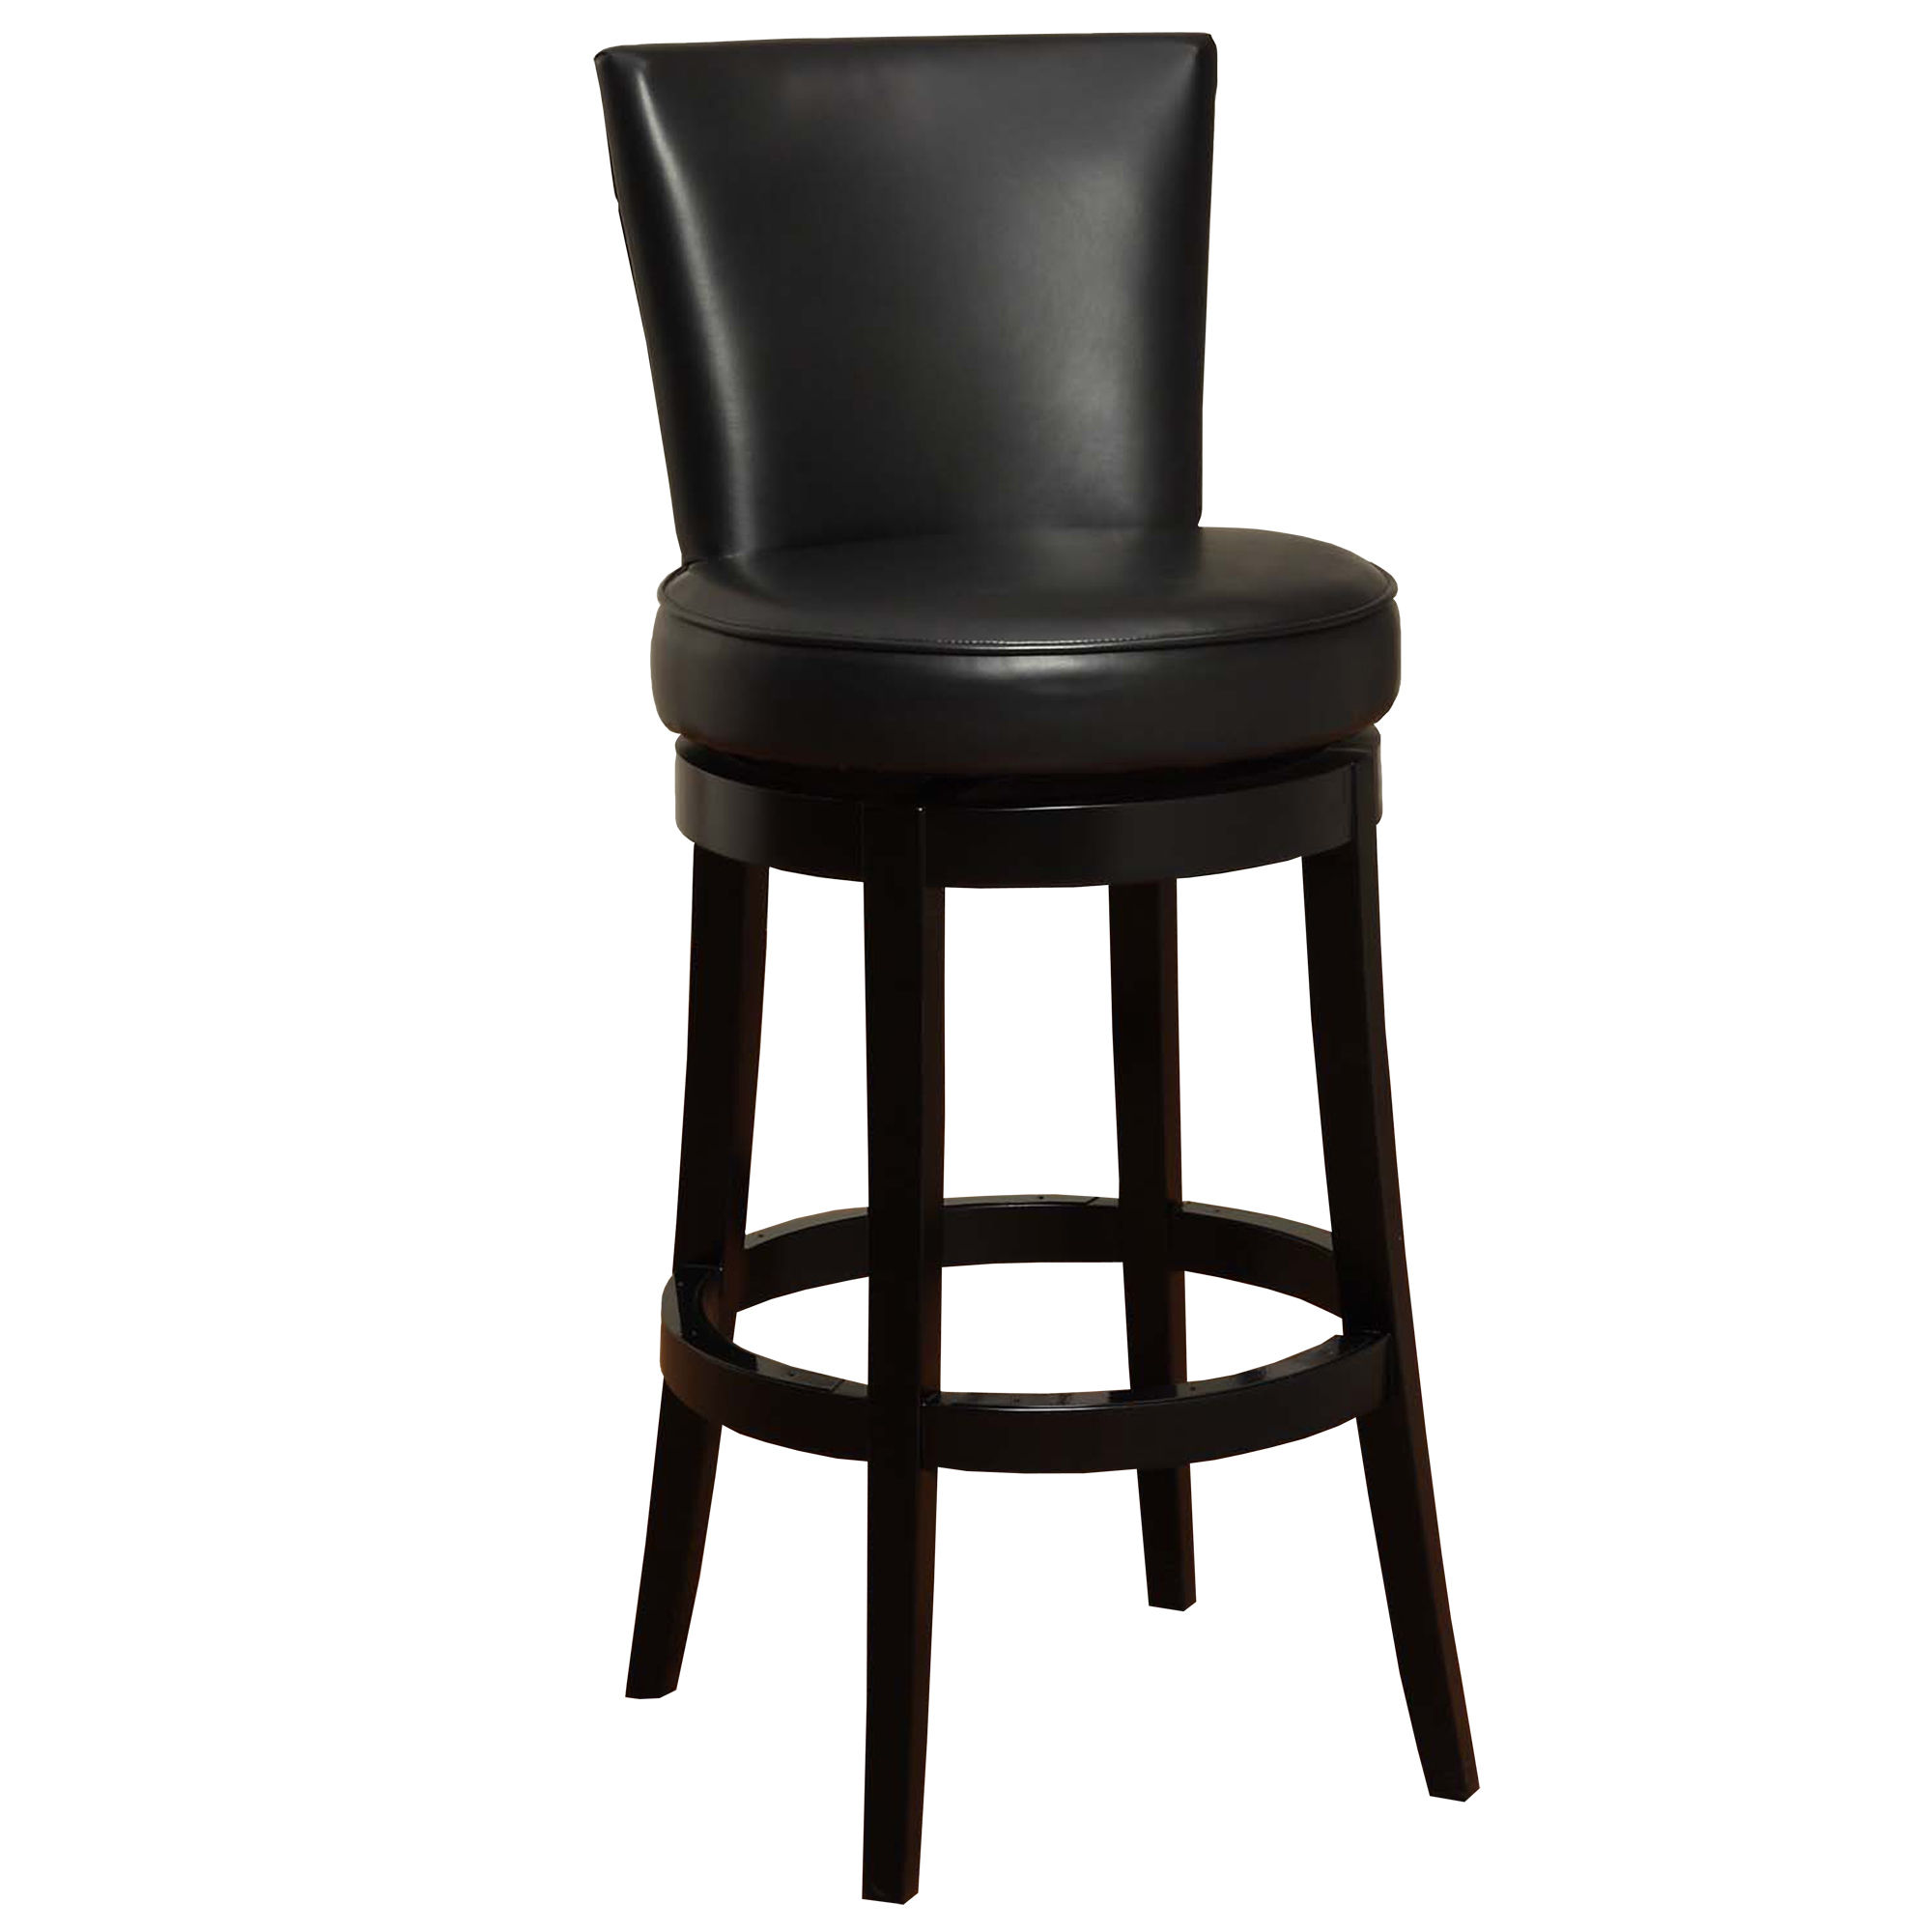 Armen Living Boston Black 26 Inch Counter Stool The Classy Home